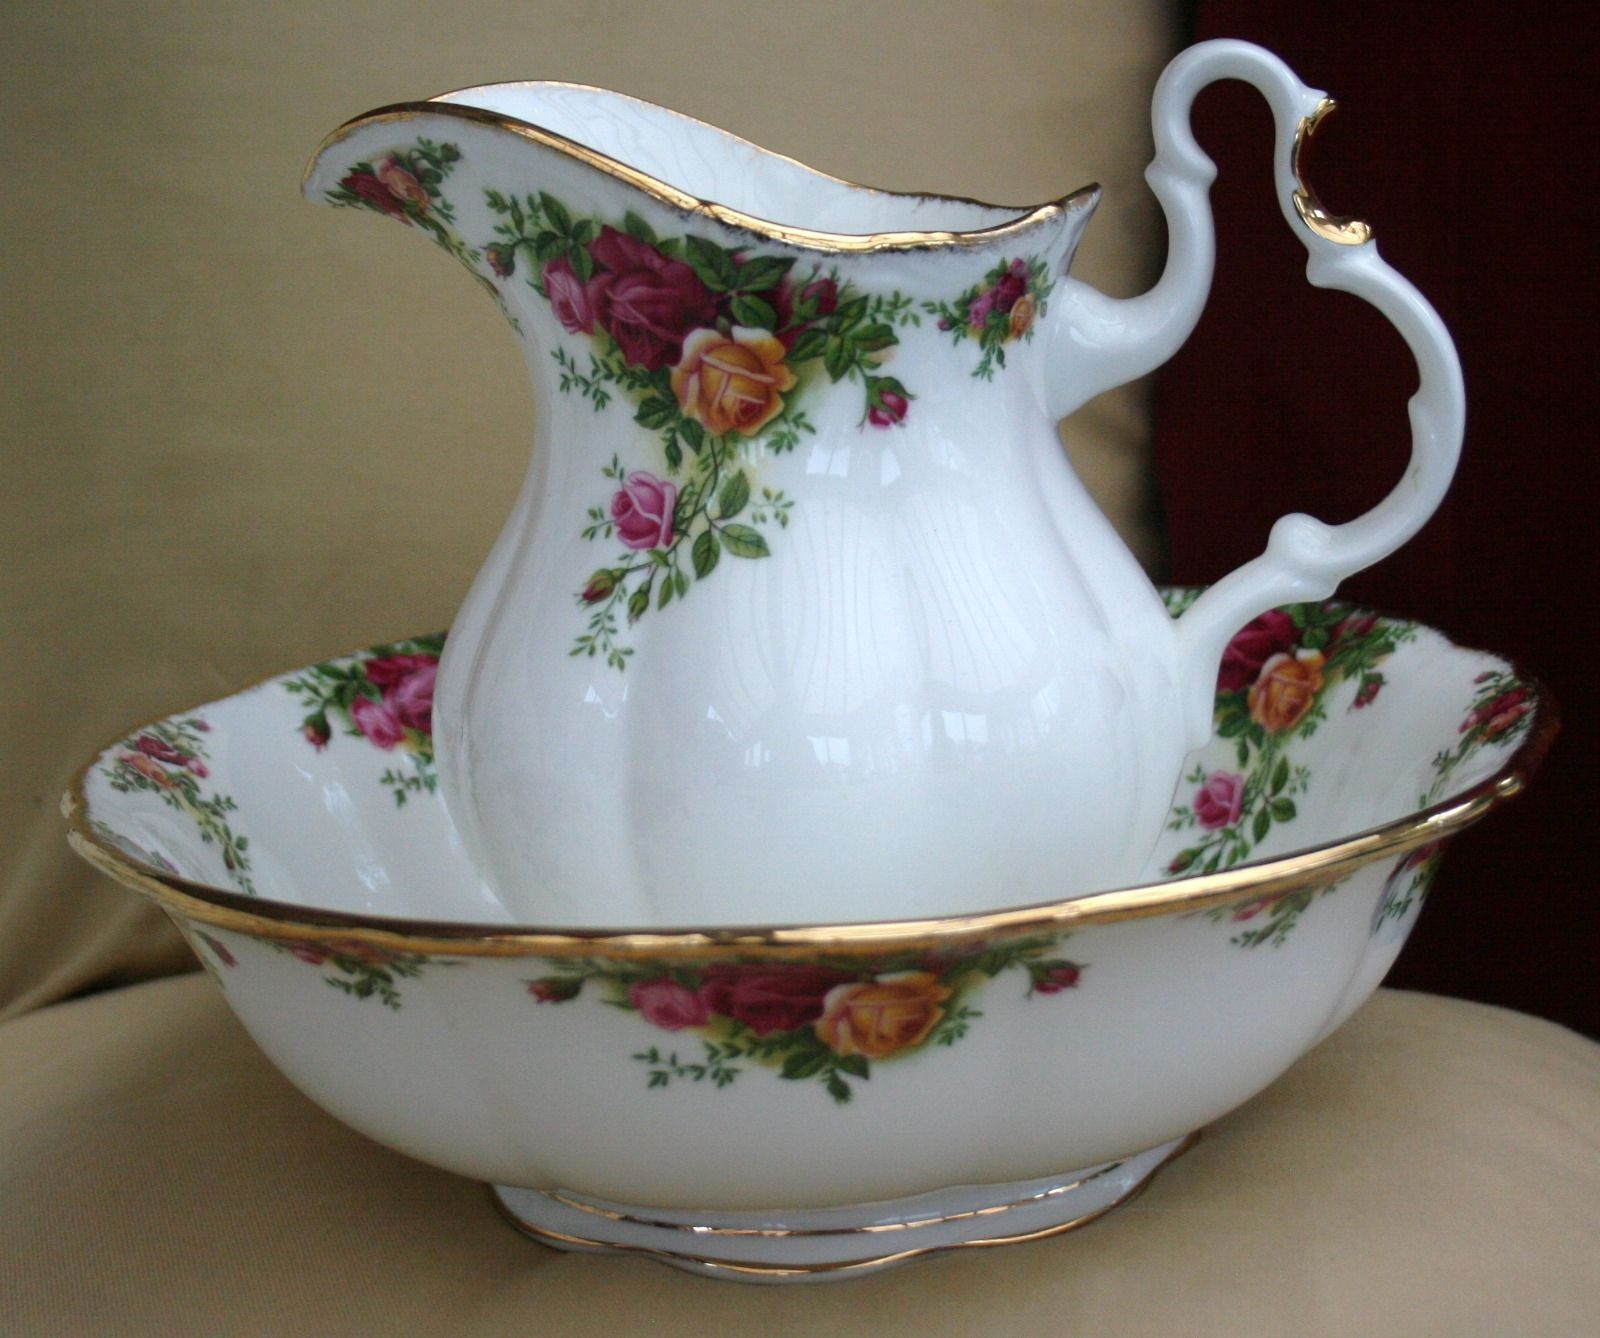 Ouderwetse Wasbak Royal Albert Old Country Roses Wash Bowl And Pitcher